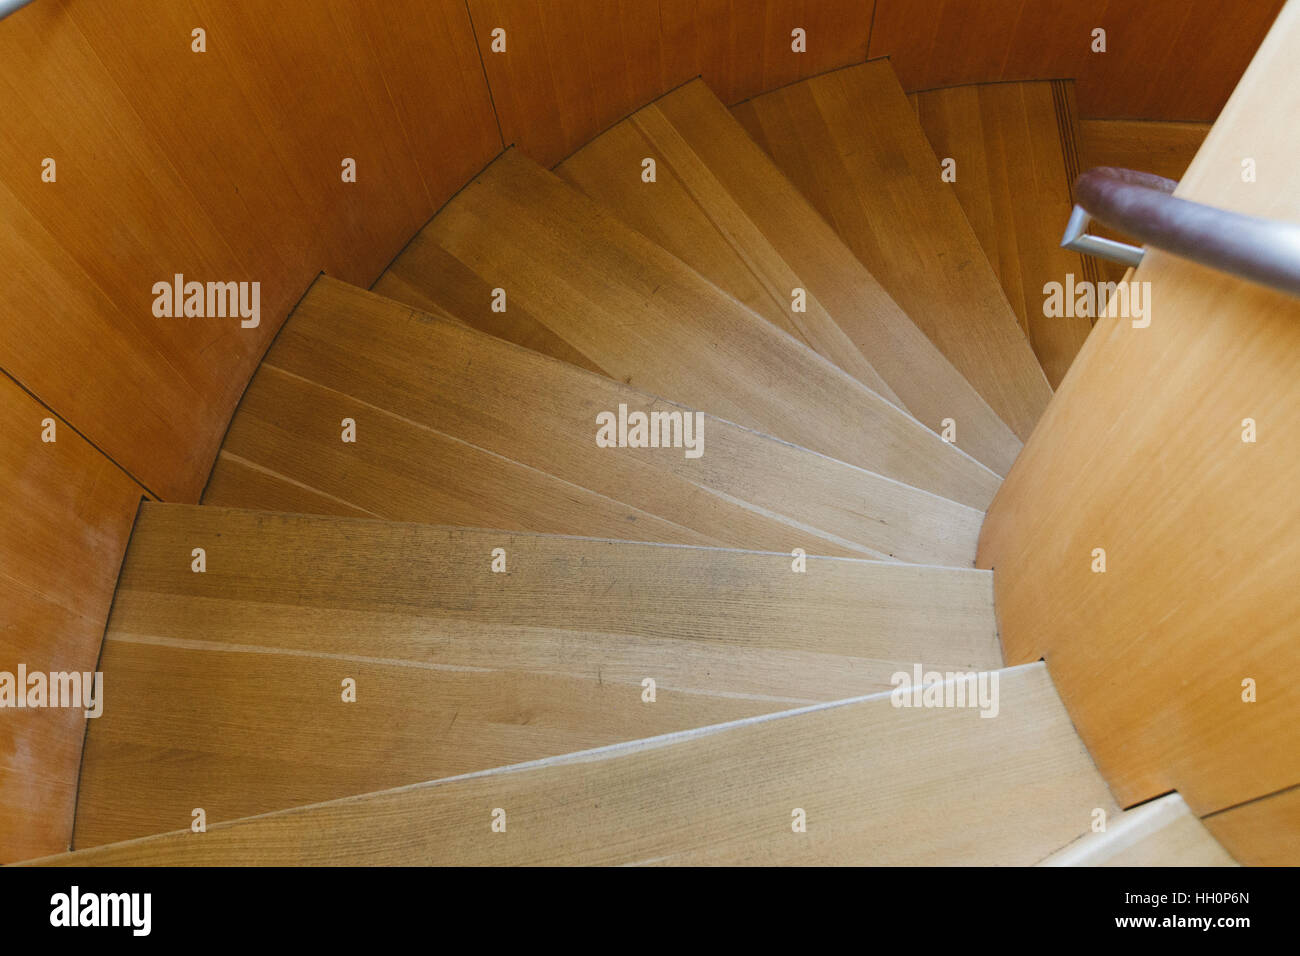 stair case steps looking down - Stock Image